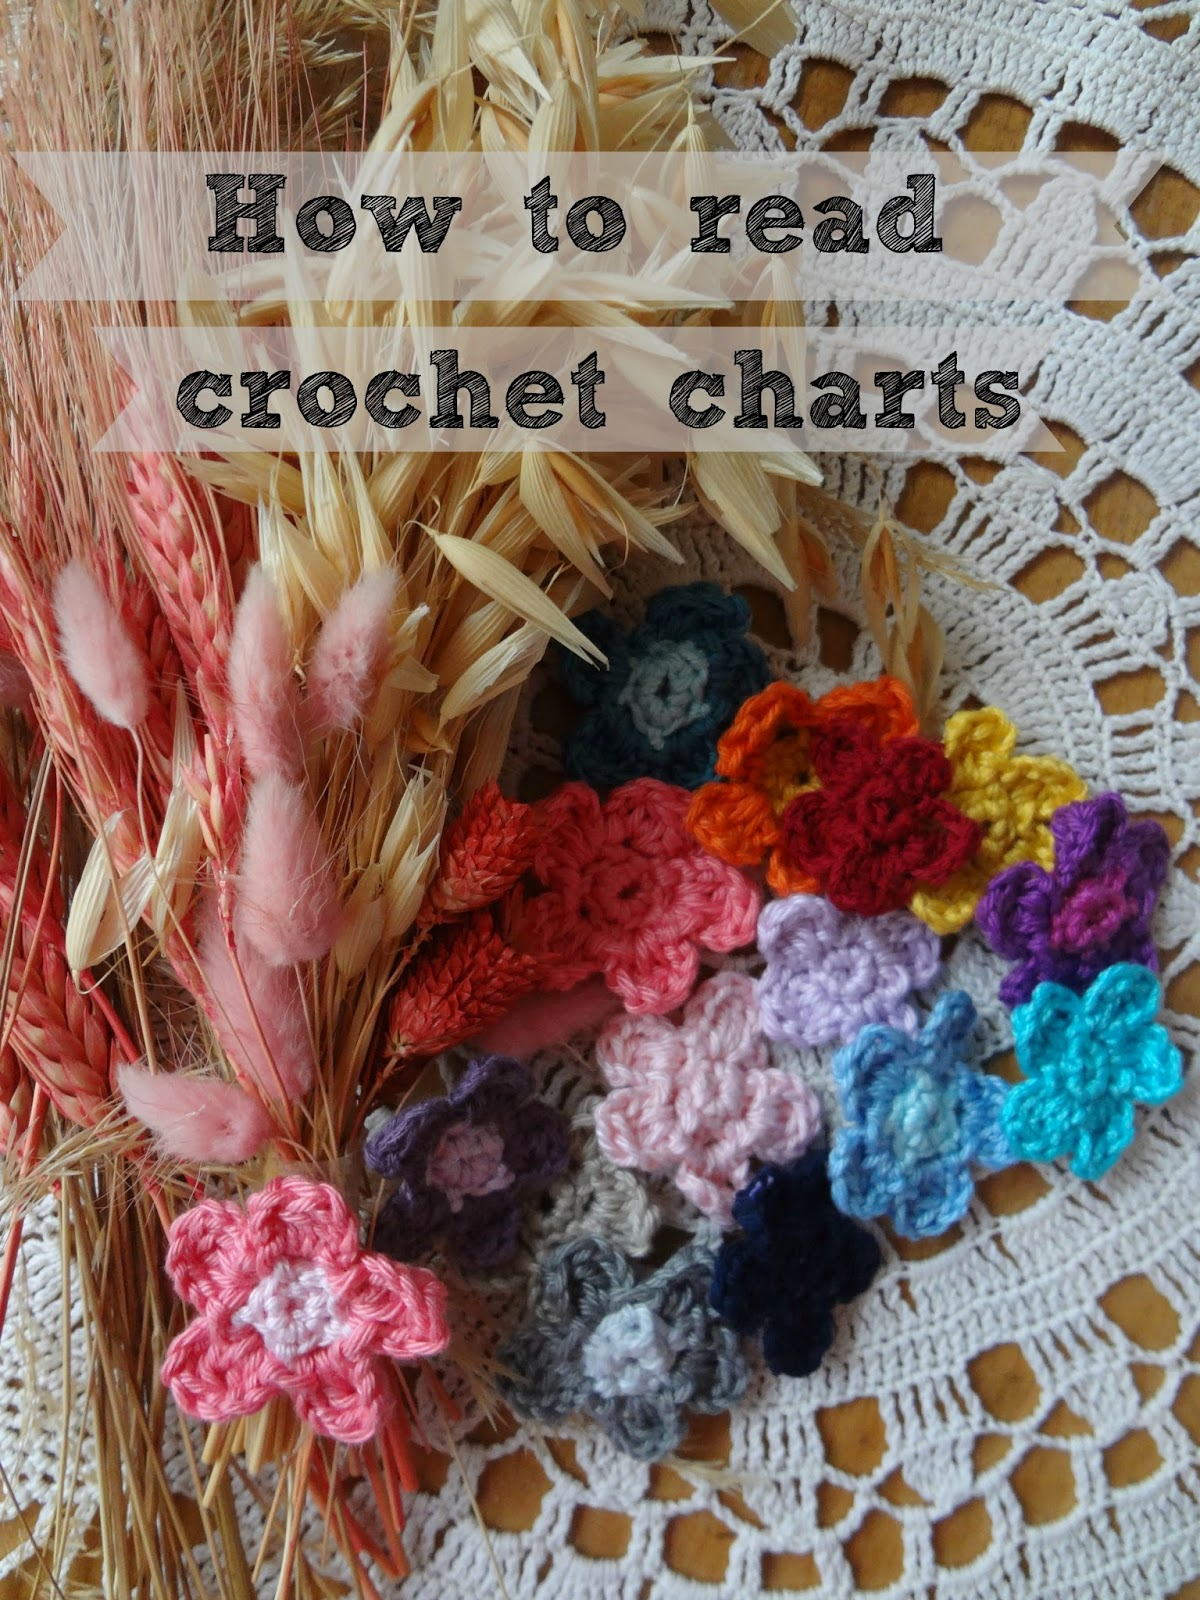 How To Read Crochet Patterns : ... Treasures: How to read round crochet charts and a free flower pattern